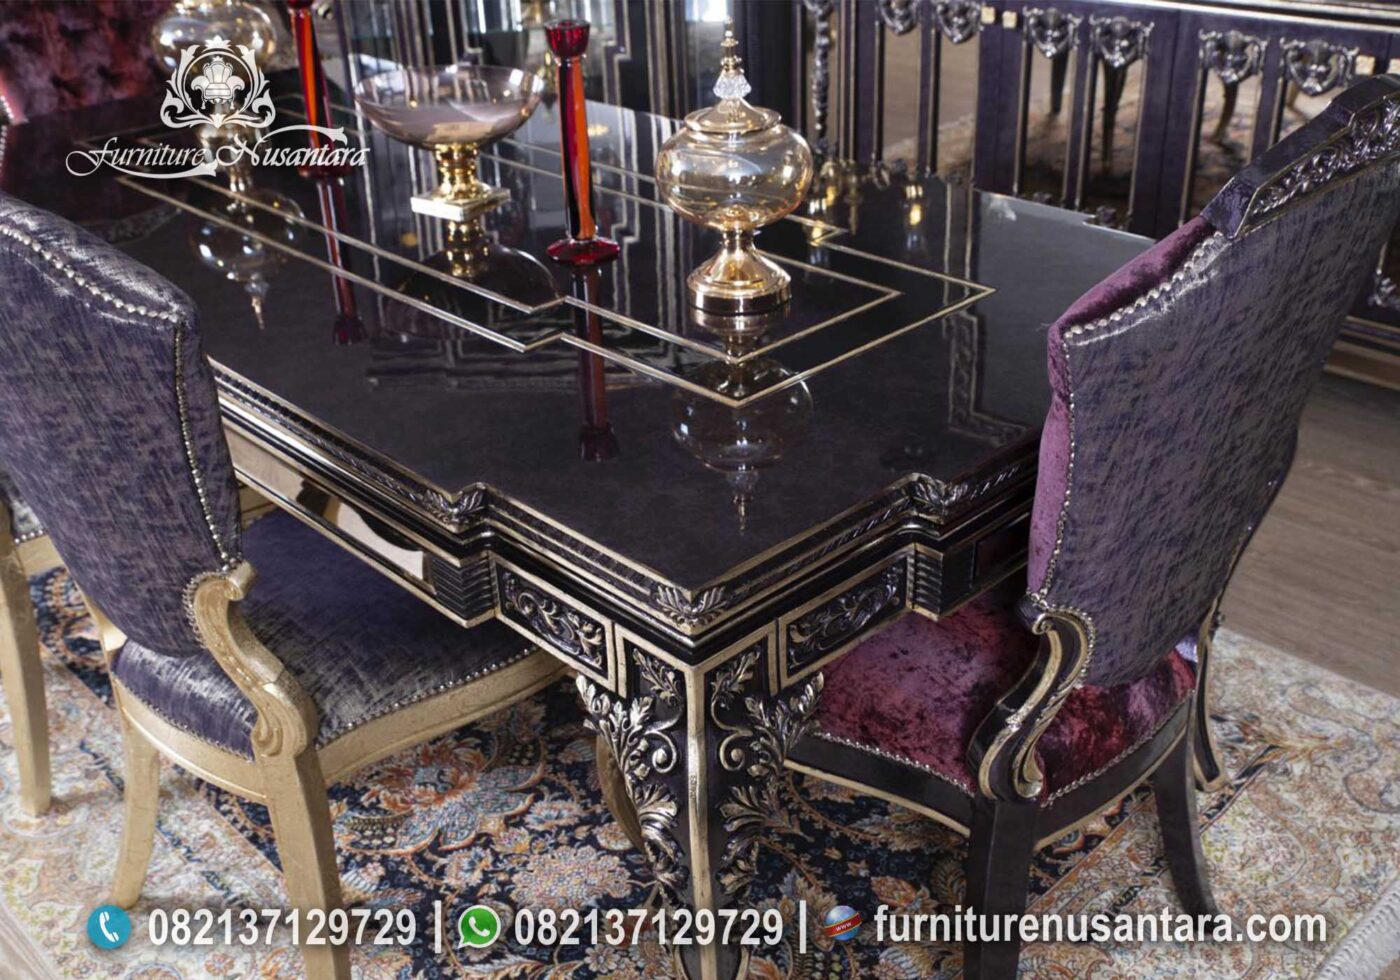 Meja Makan Warna Ungu Klasik Luxury MM-23, Furniture Nusantara